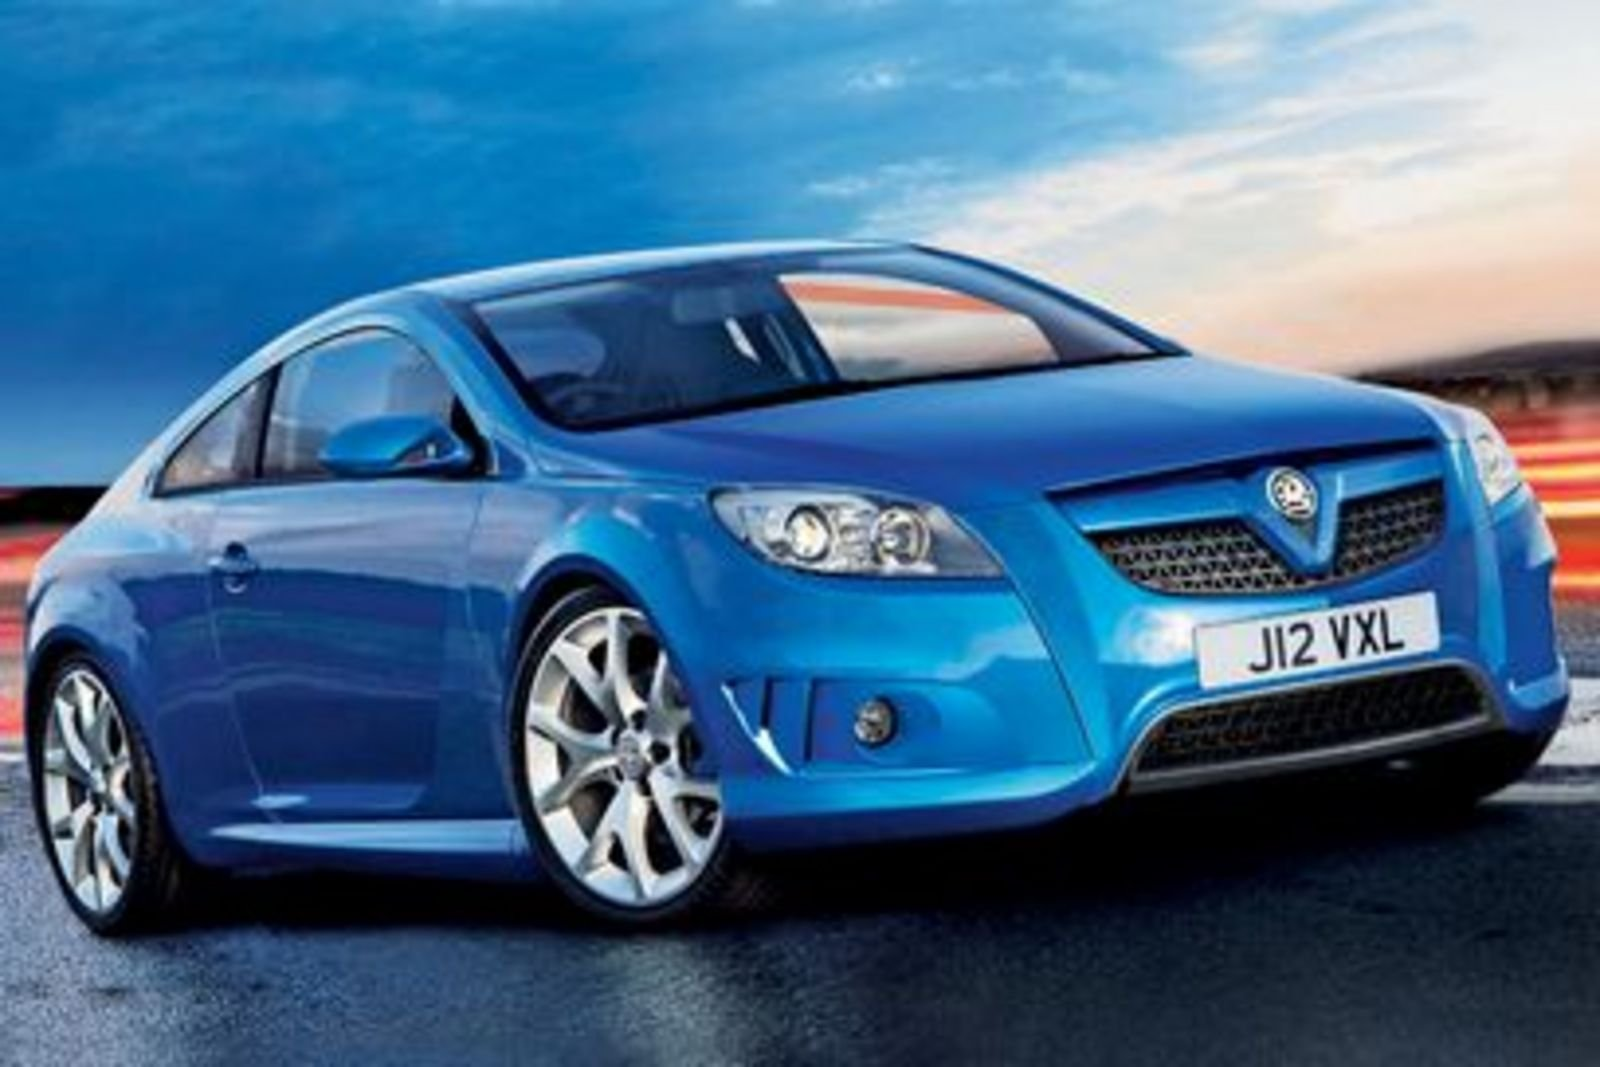 Vauxhall Calibra To Come Back In 2009 News - Top Speed